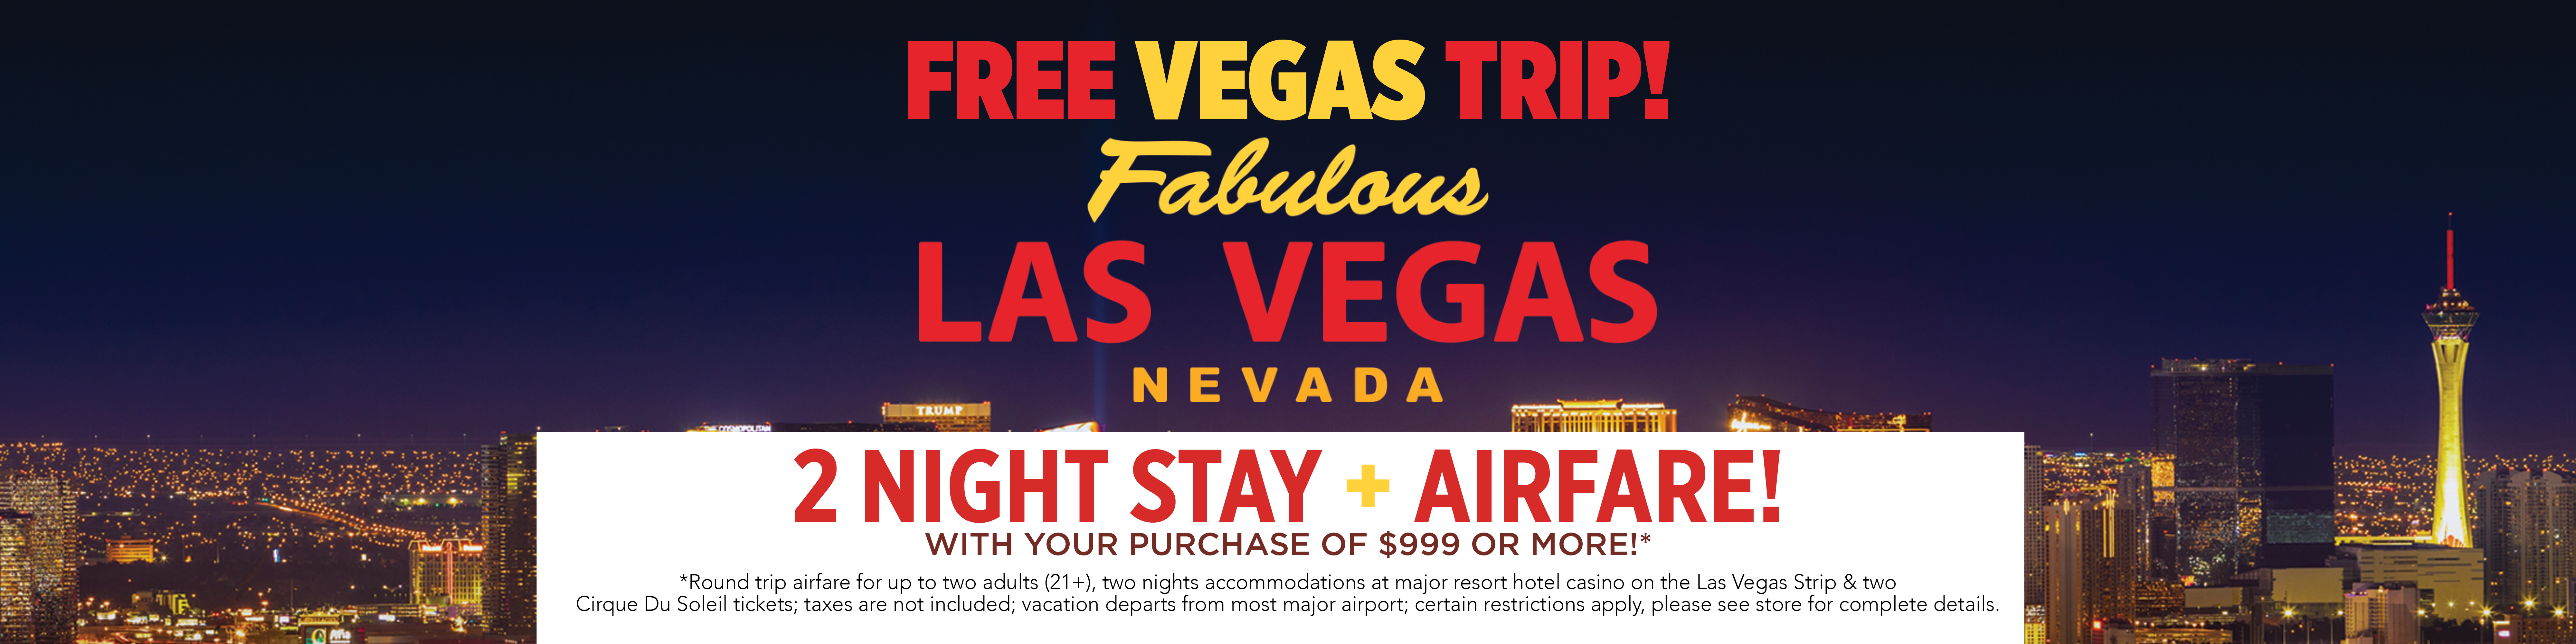 Free Trip to Vegas - Click here for Details